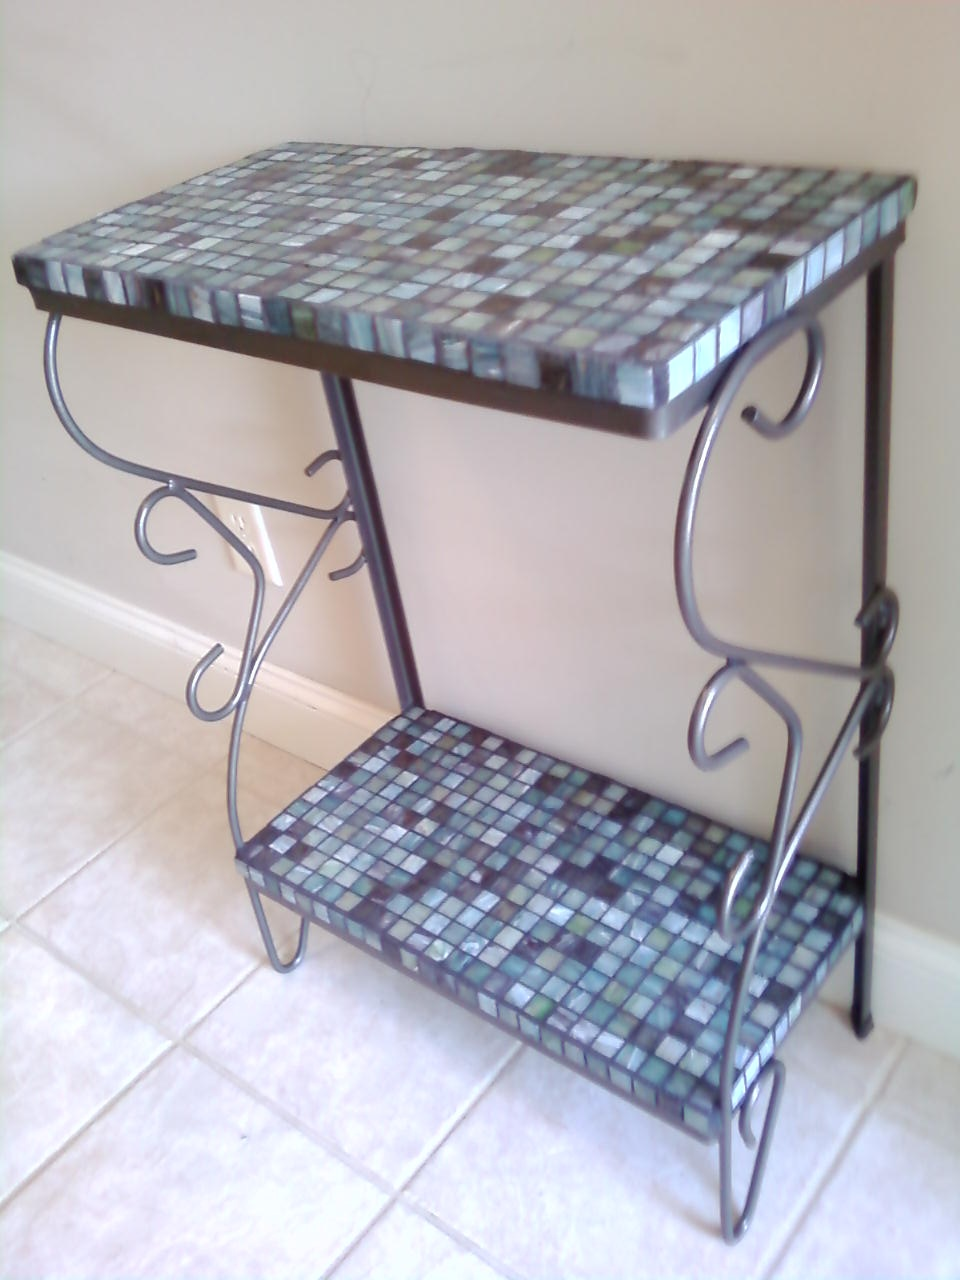 Fish tank stand table frou fru gal froo froo 39 gal for Fish tank stand